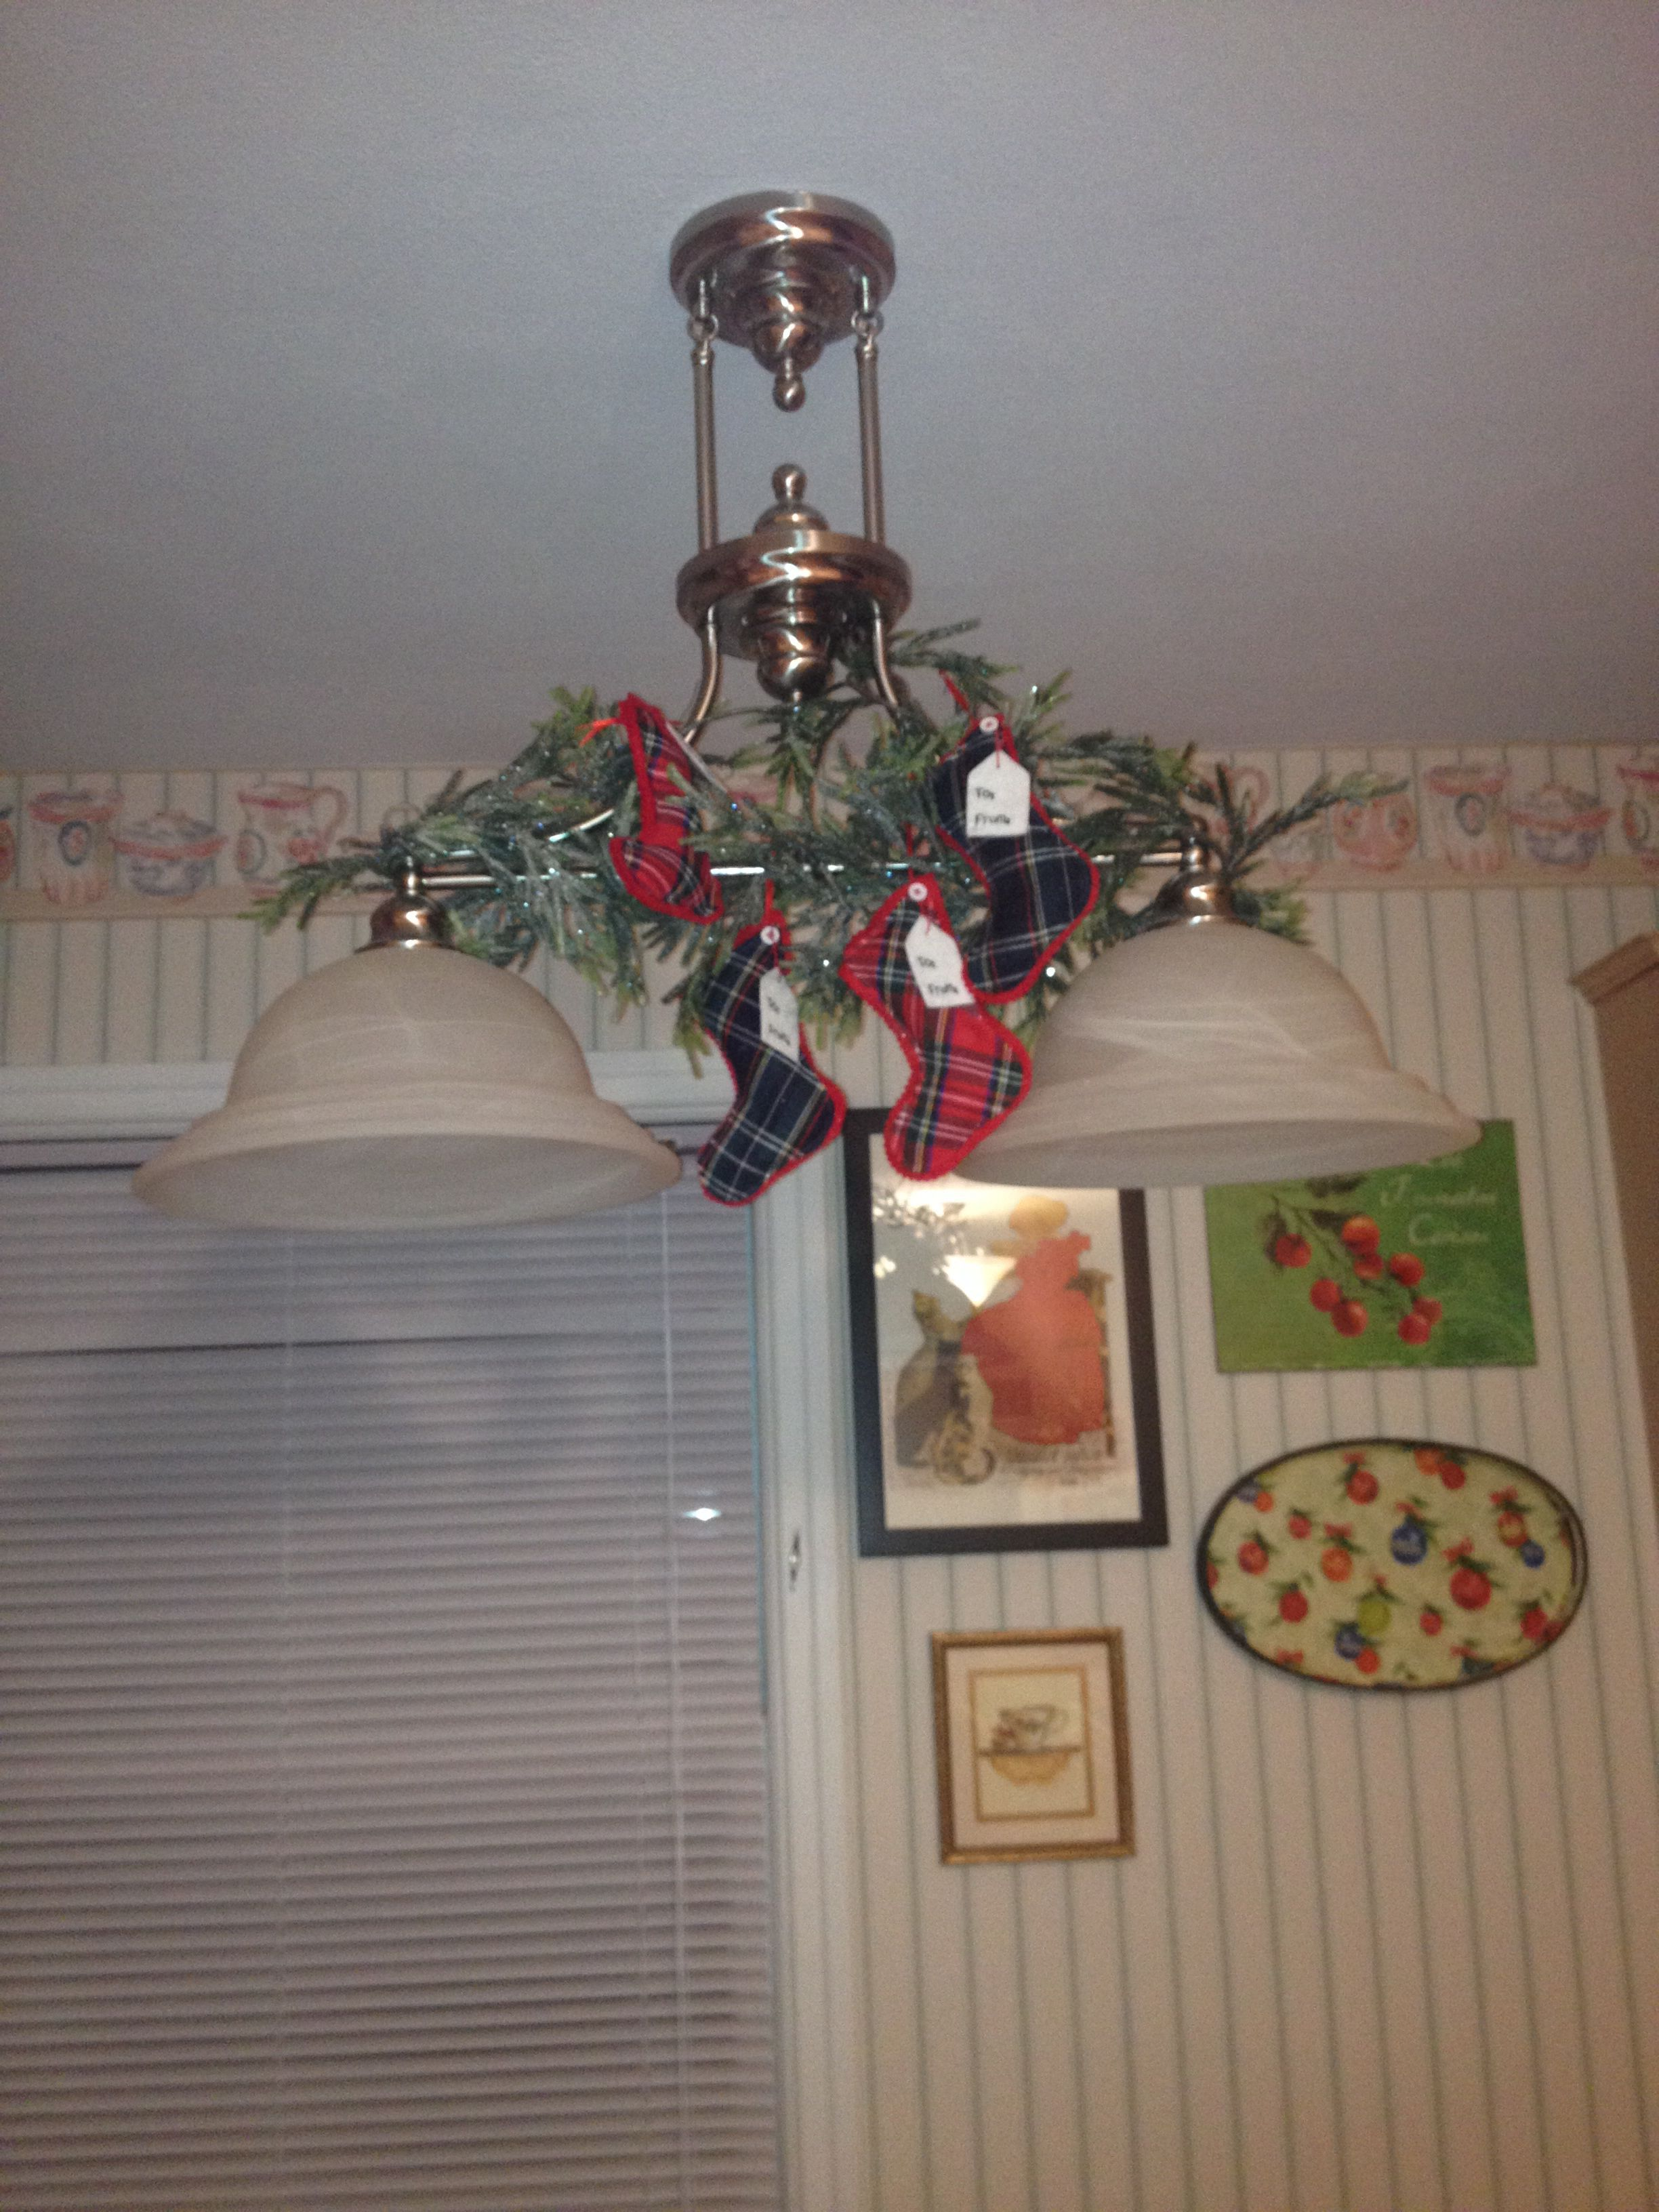 Kitchen chandelier with stockings!